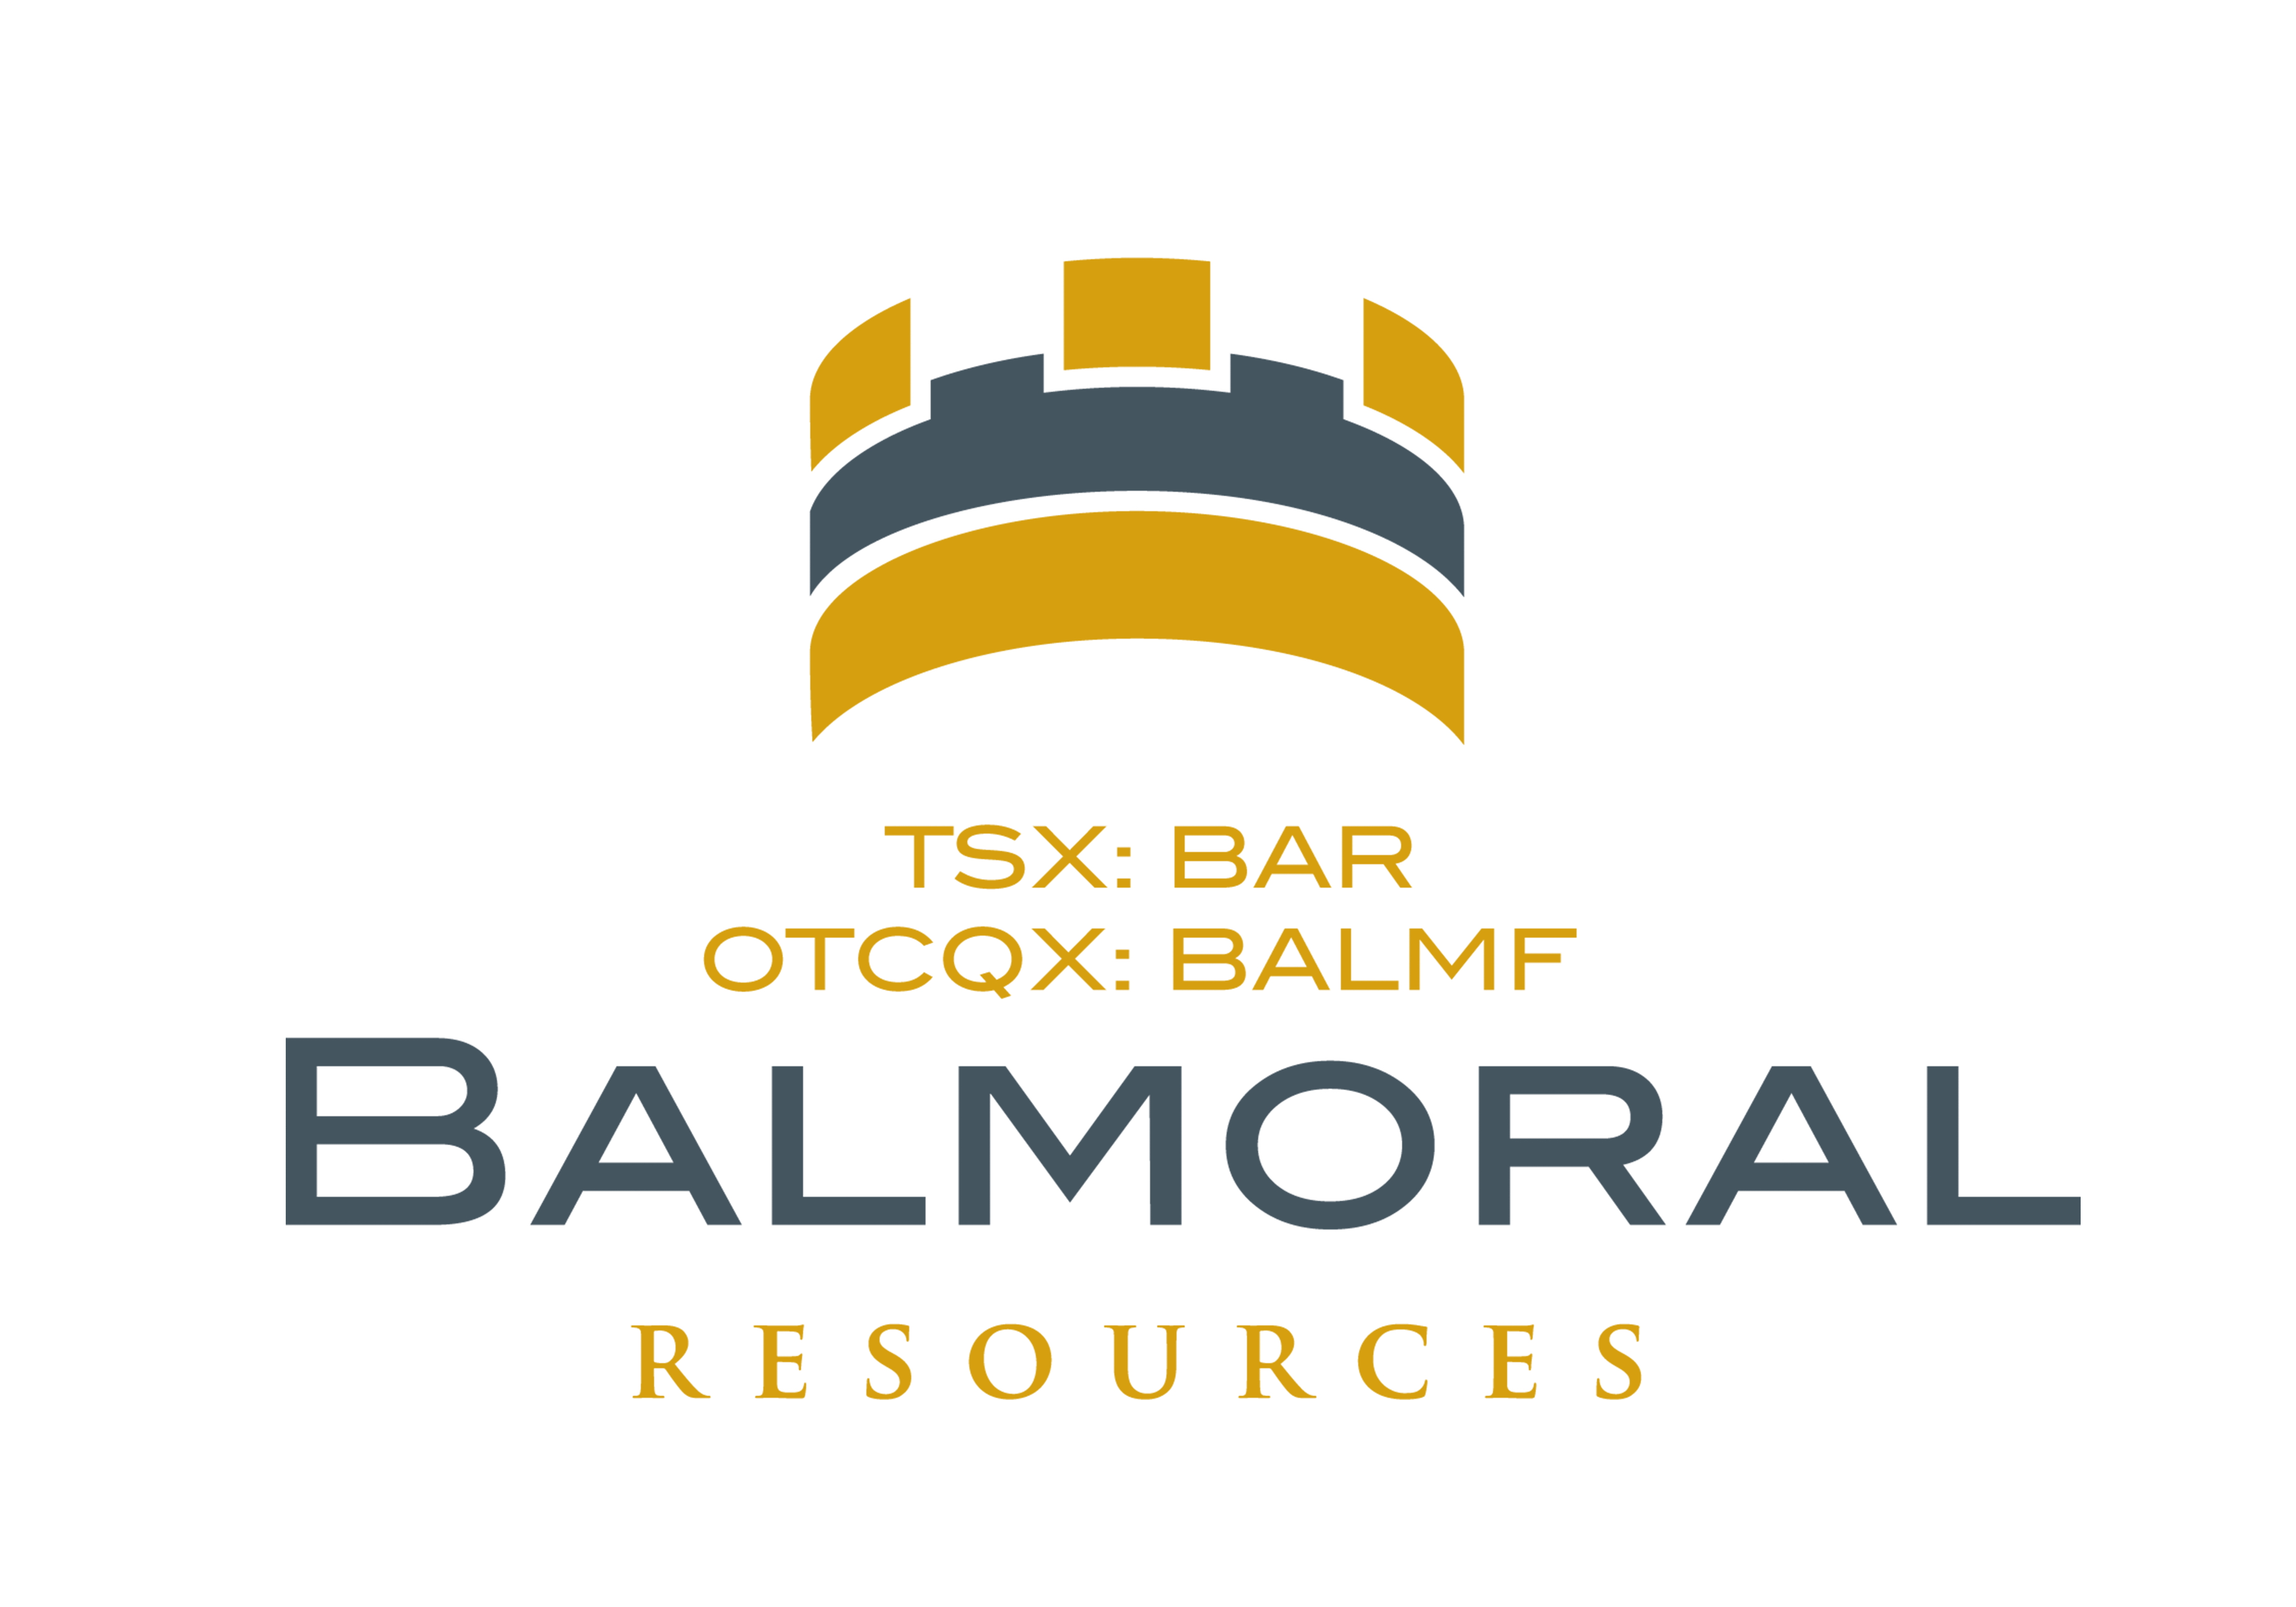 Balmoral's Area 51 Gold System Program Continues - Preparation for Winter Drilling Underway